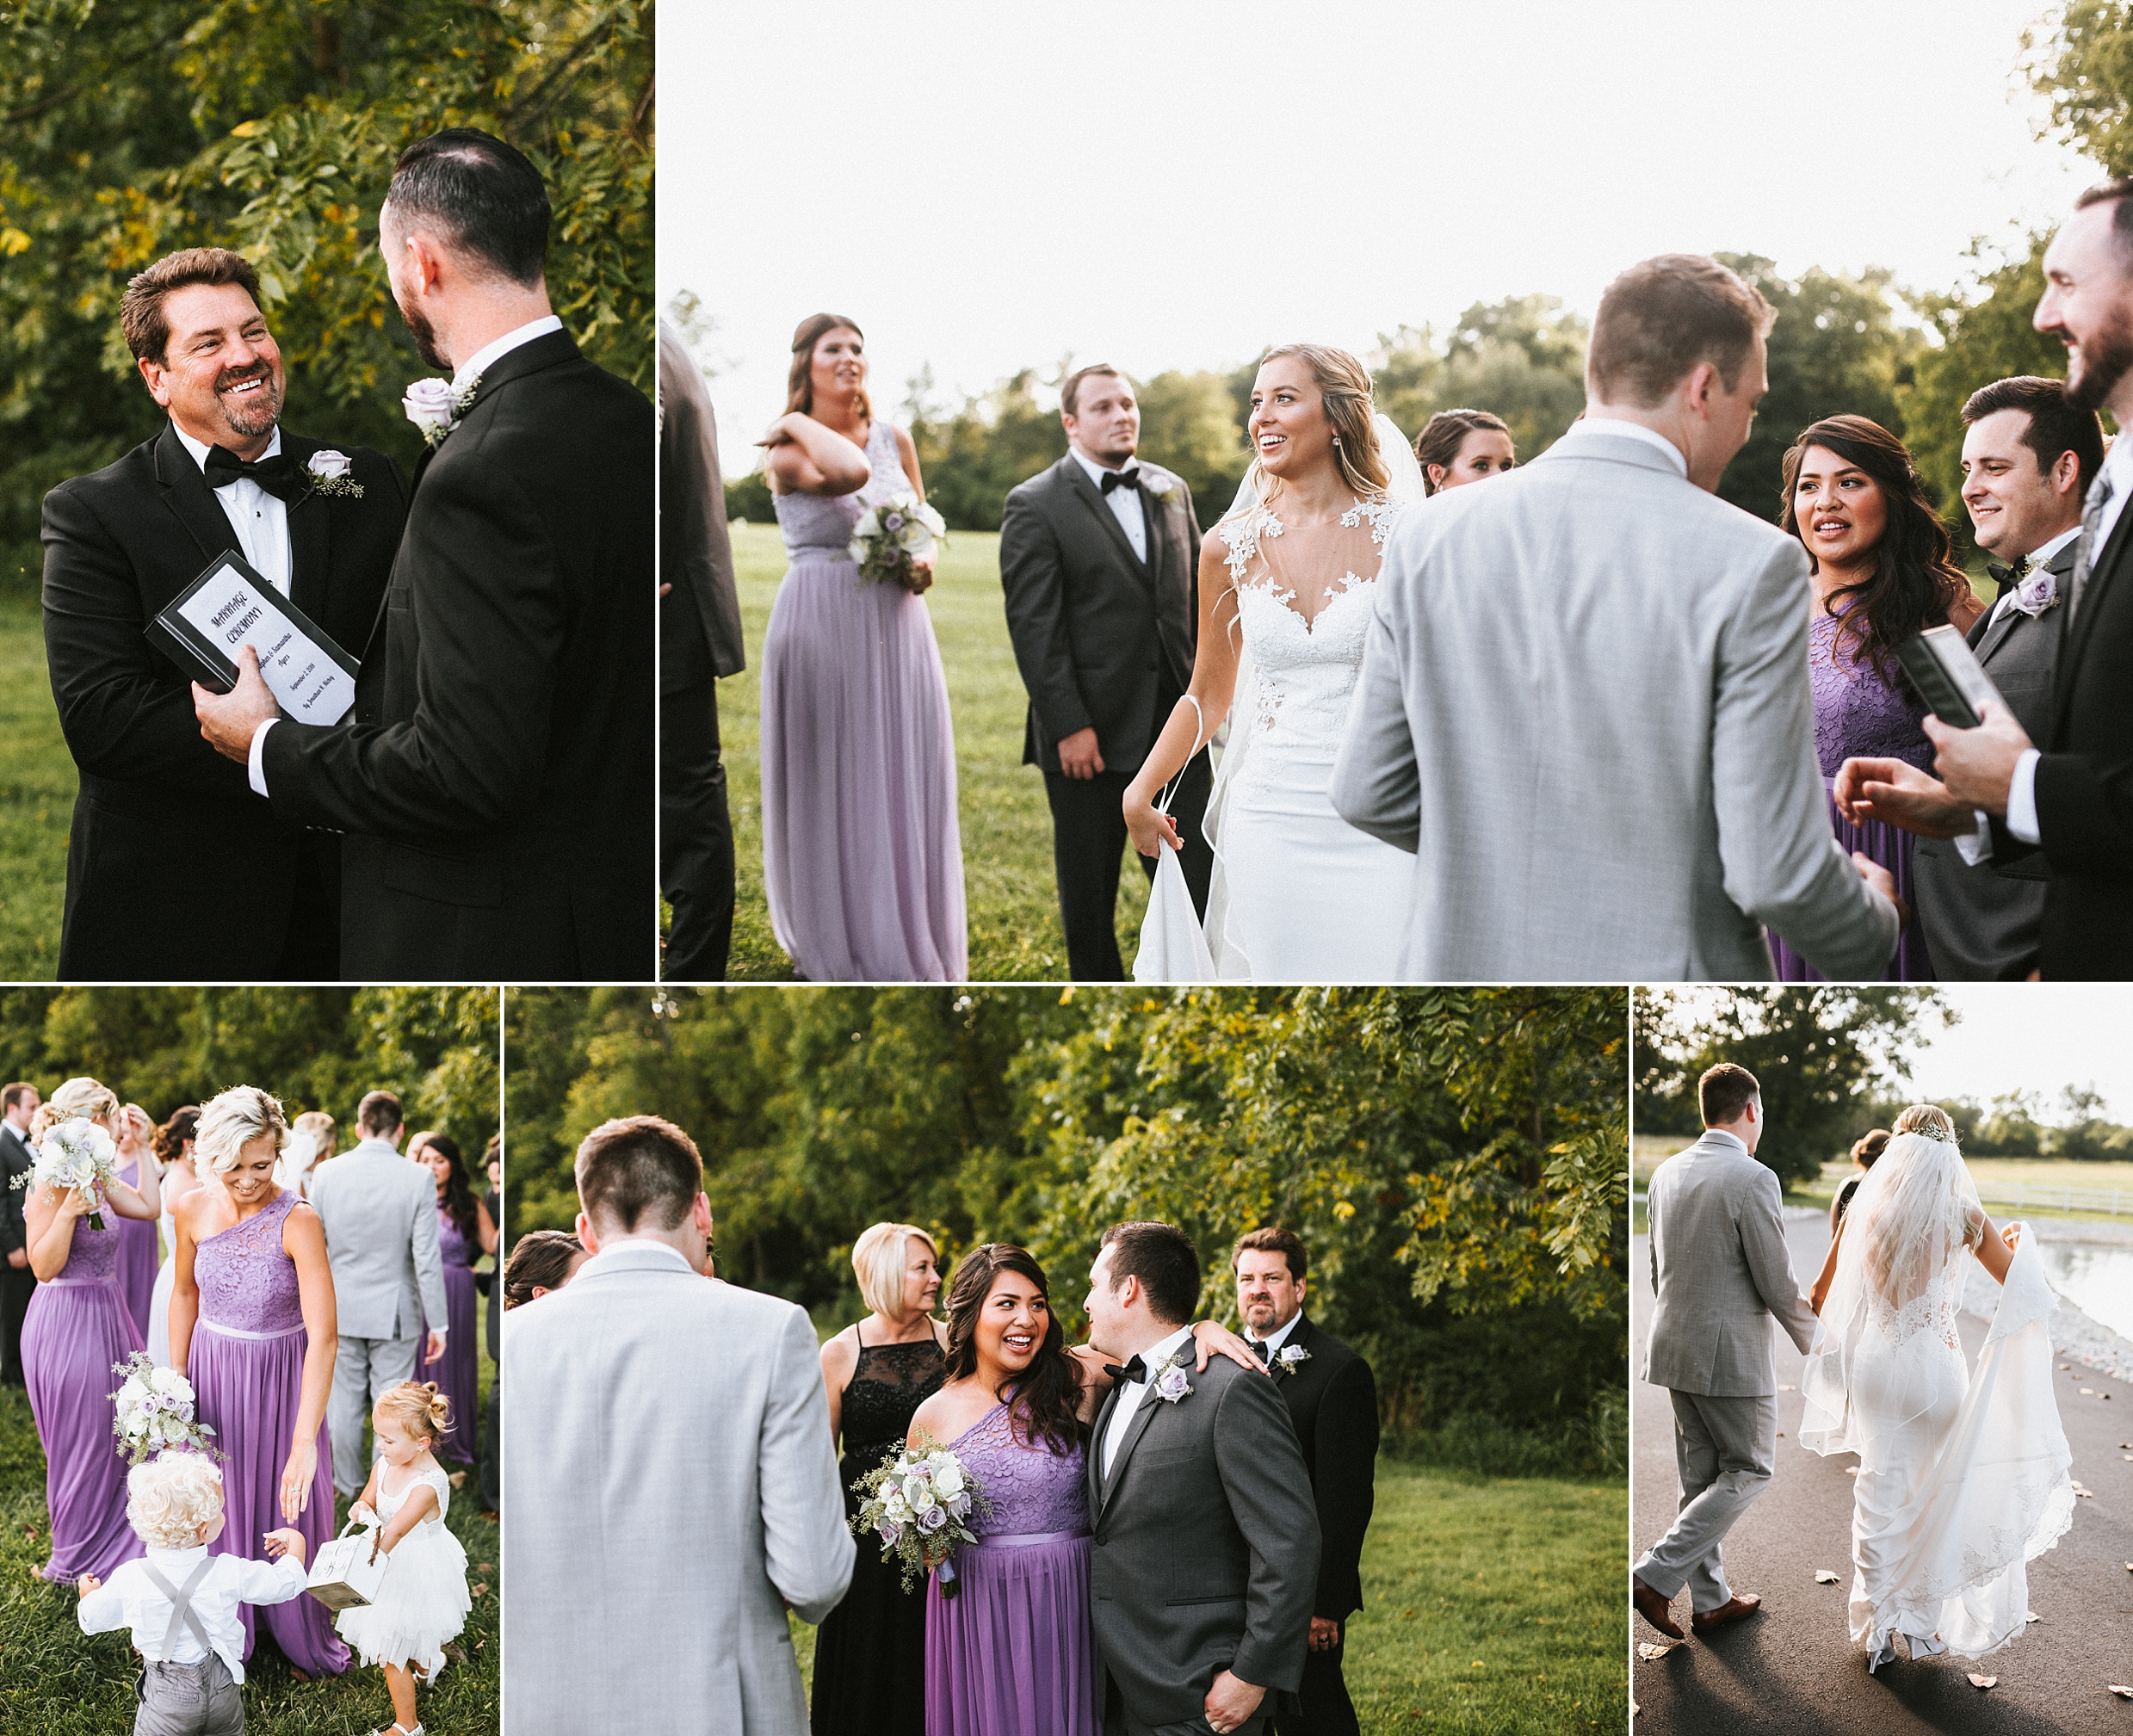 Brooke Townsend Photography - Cincinnati Wedding Photographer (150 of 230).jpg